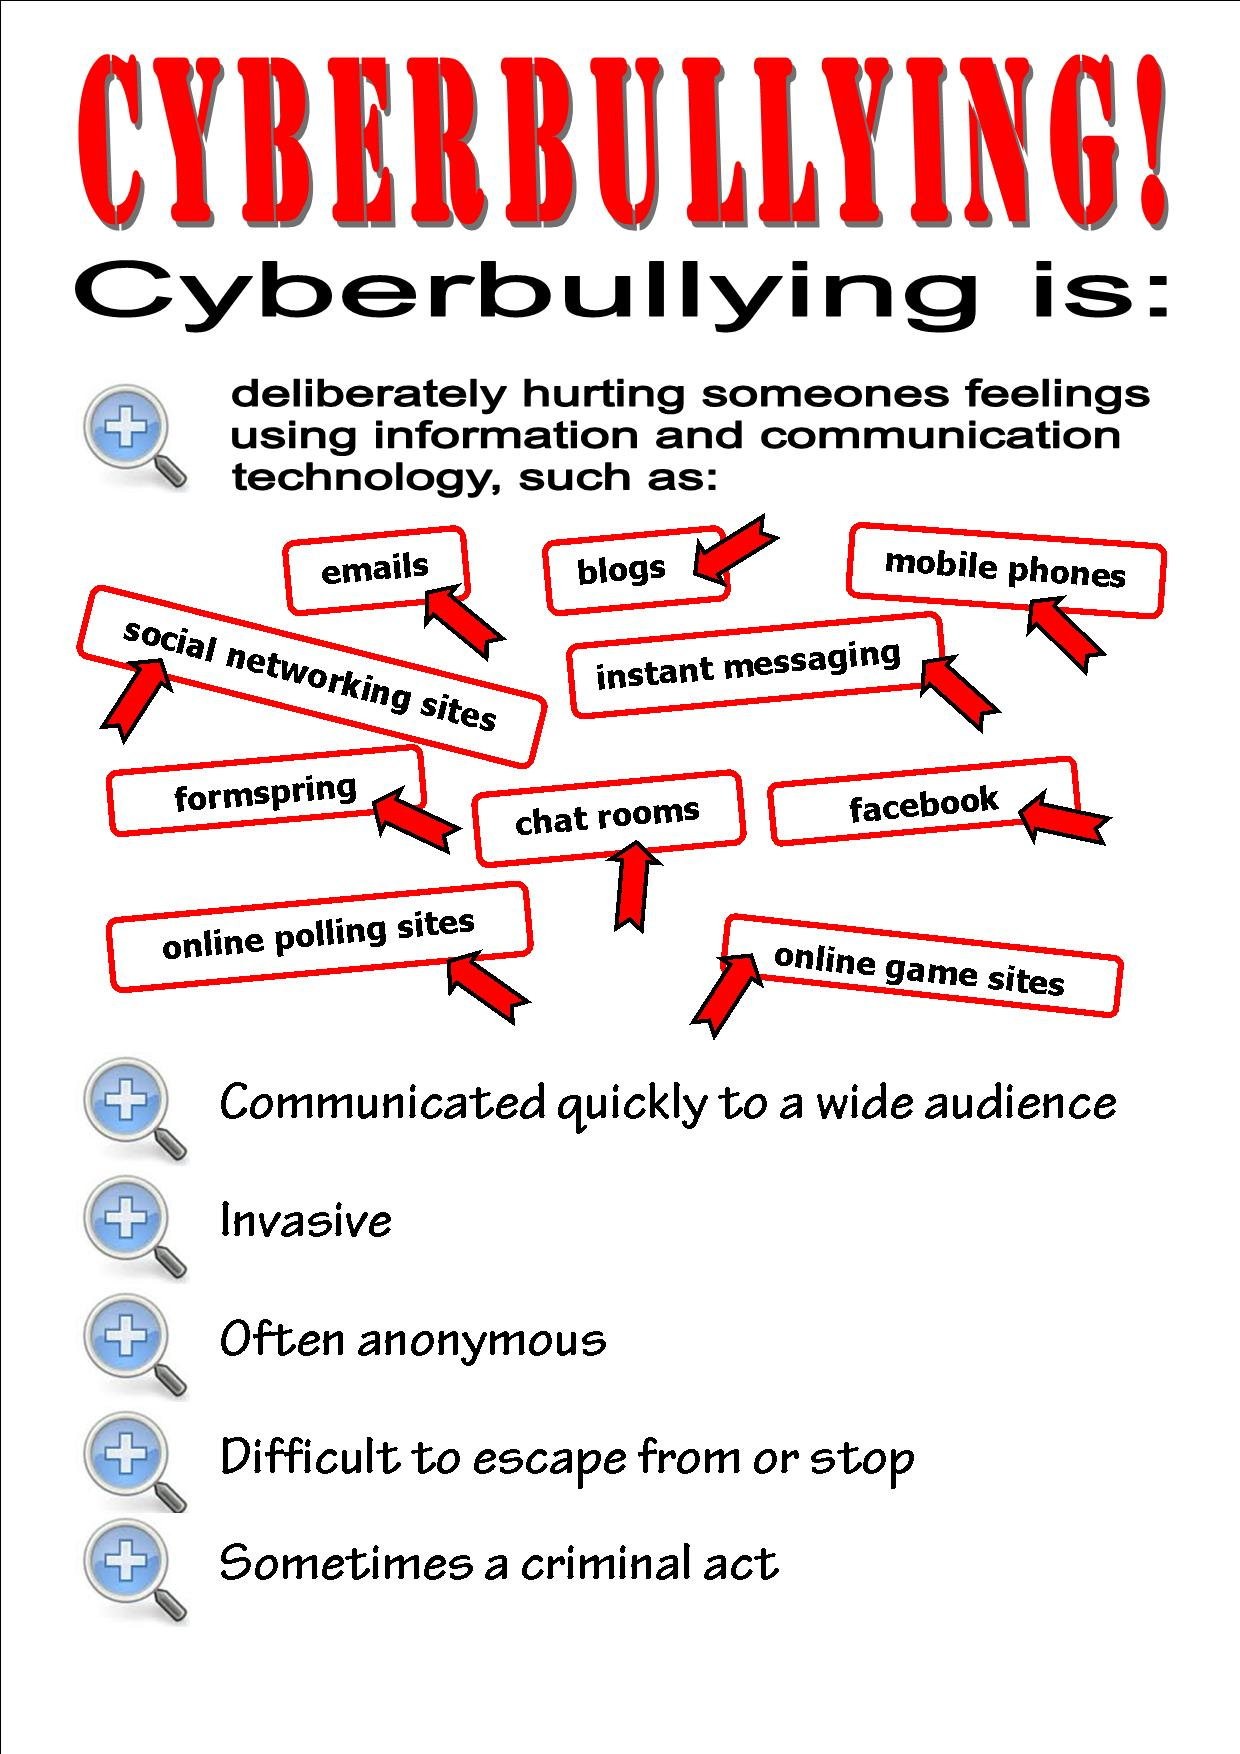 Worksheet Cyber Bullying Worksheets bullying on emaze can occur even before camp begins or after has ended for the day summer campers communicate by instant messaging e mail